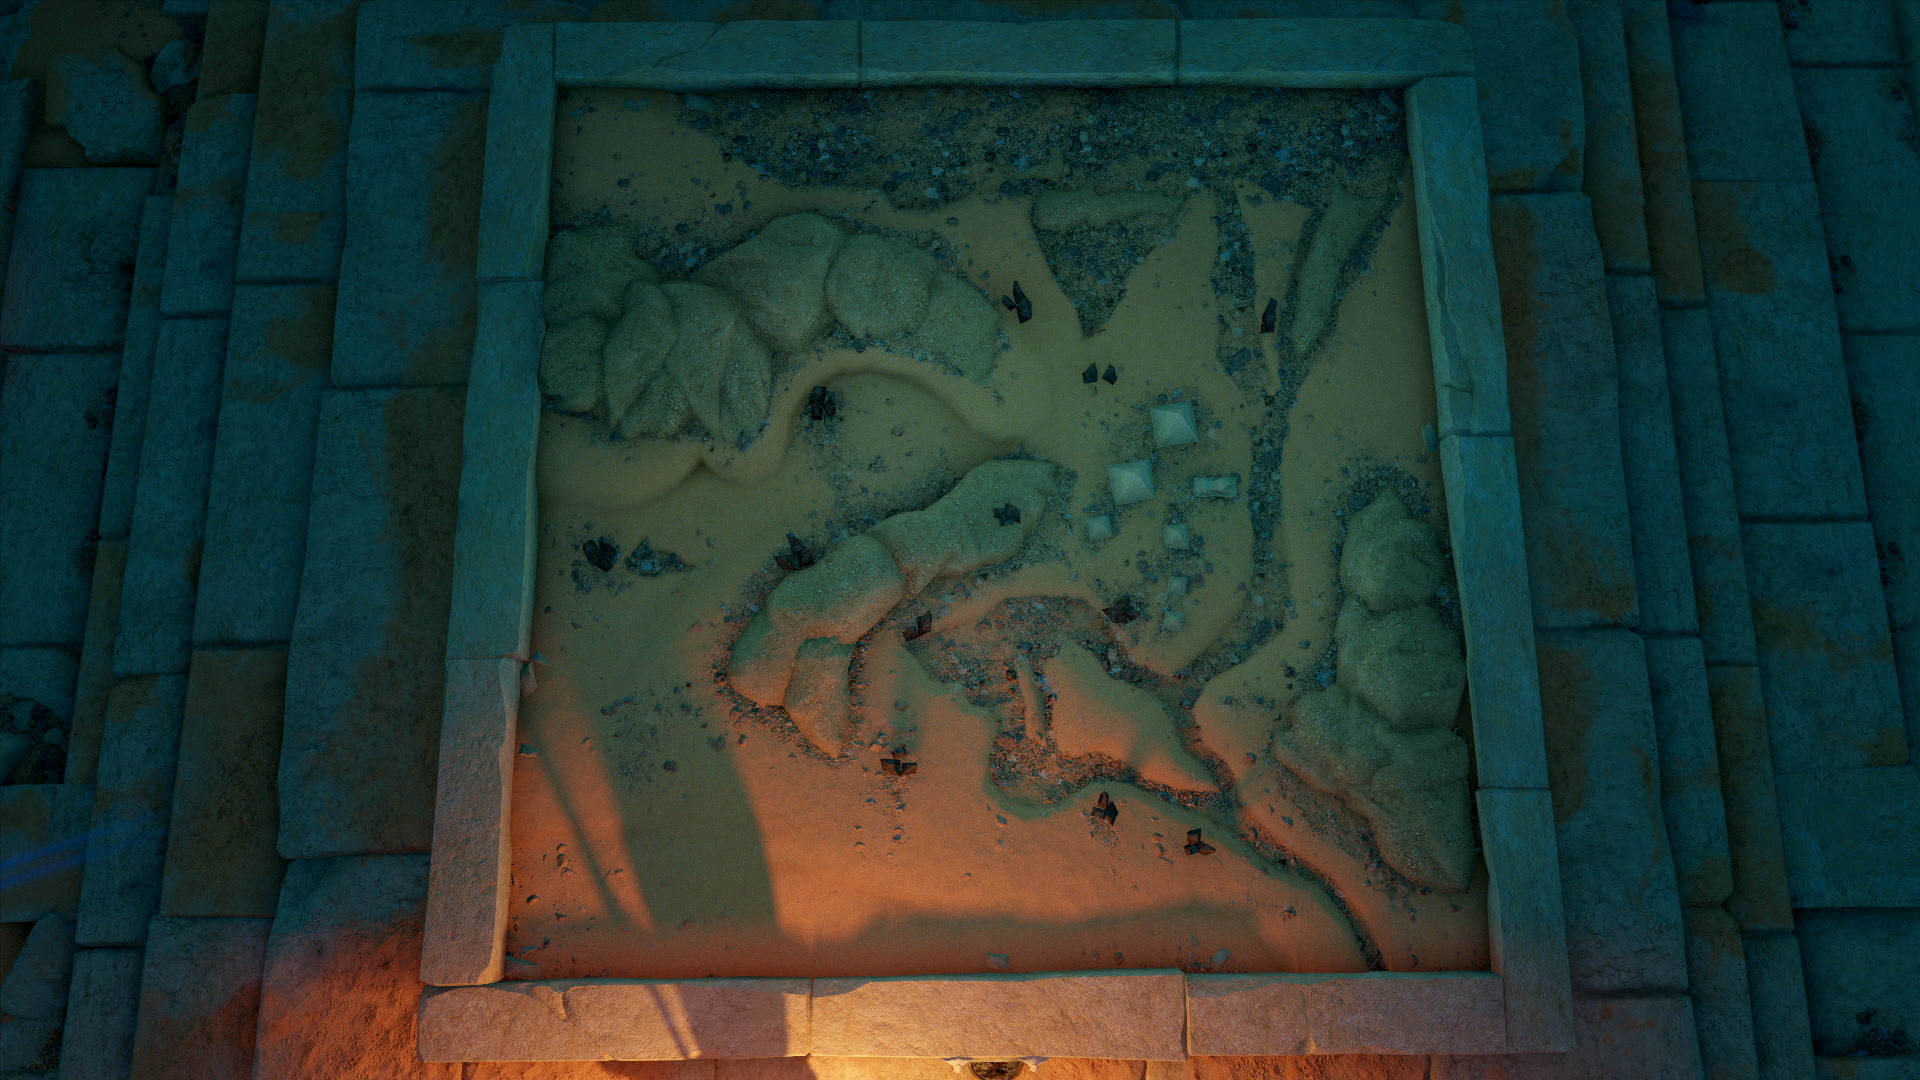 Assassins Creed Origins mapa círculos de piedras